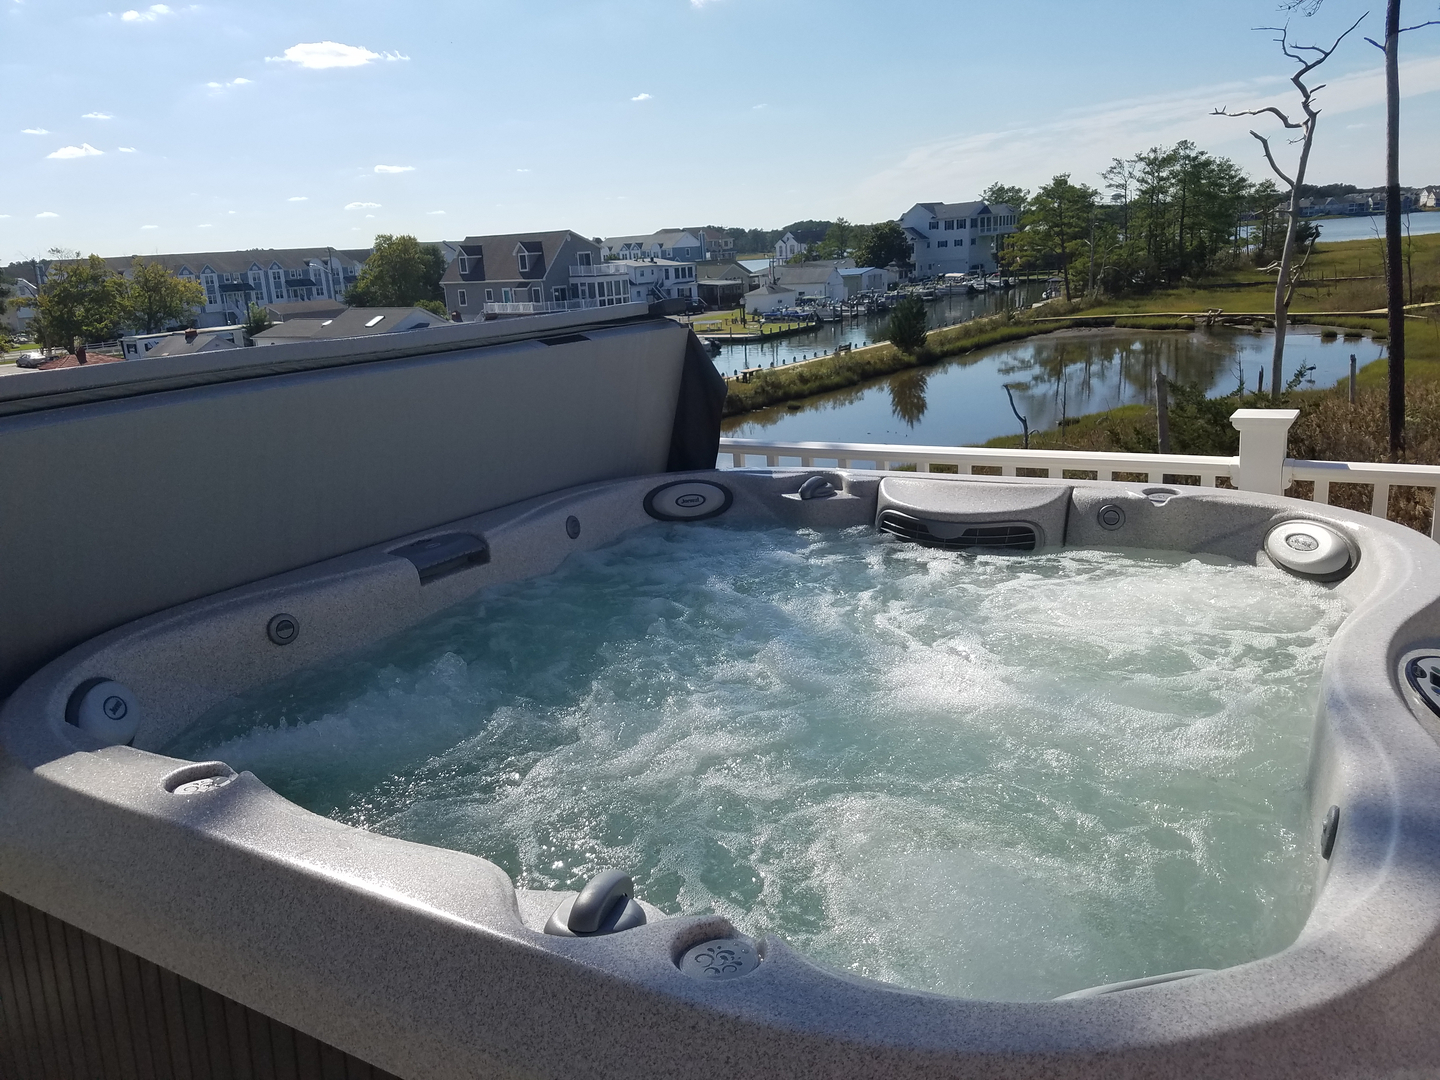 Hot Tubs and Swim Spas by Seasonal Solutions, Lewes DE and Millville DE